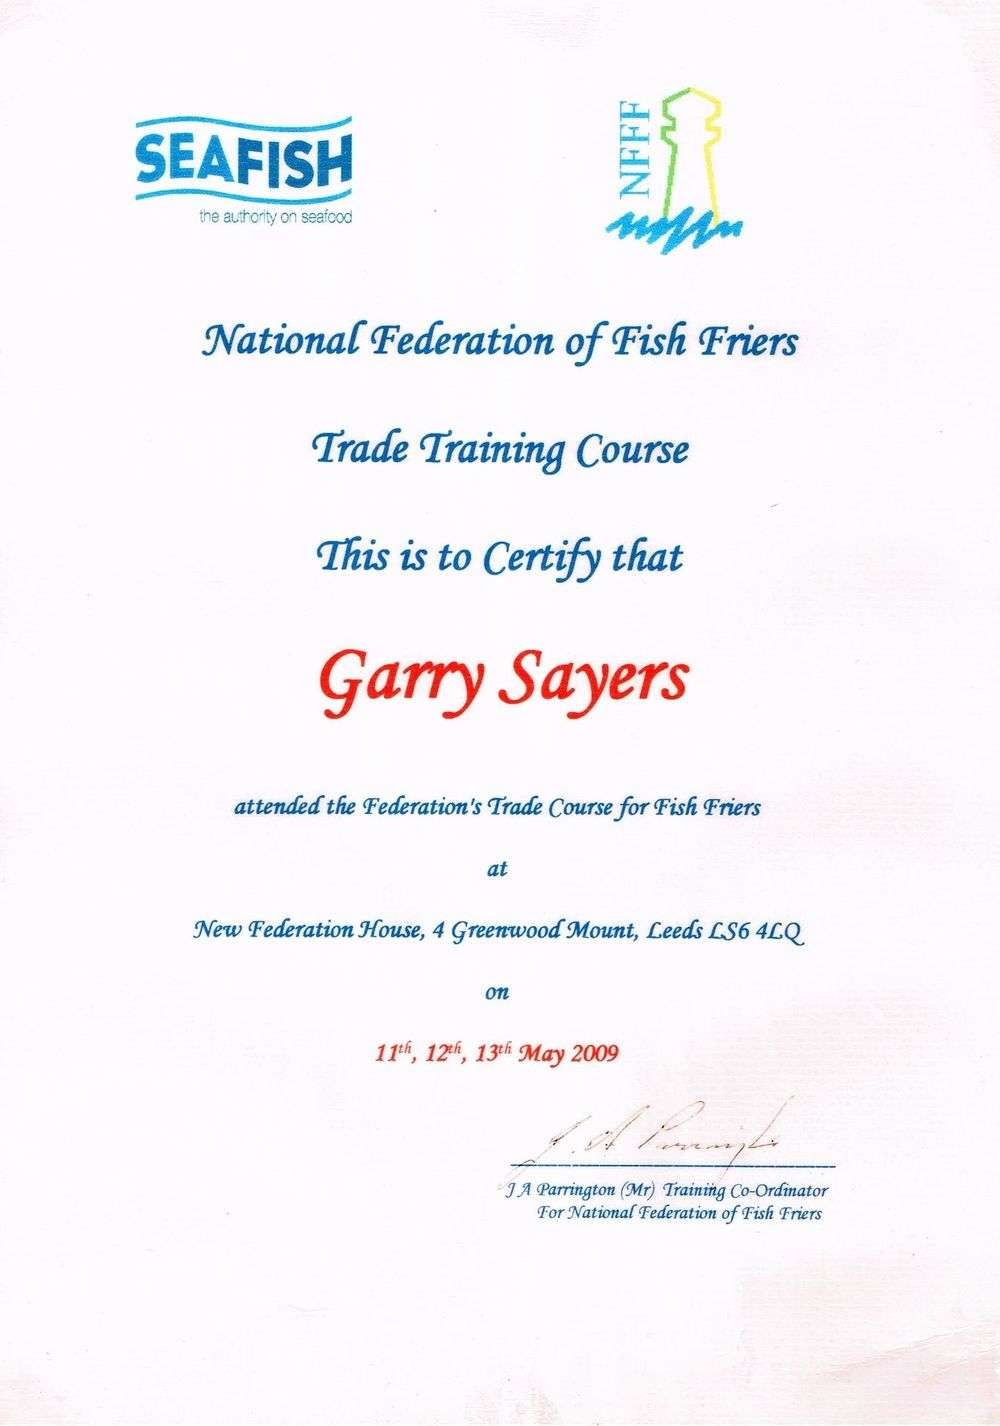 Our Seafish Training Course certificate from the National Federation of Fish Friers, awarded to us for completing our training course ten years ago in fish and chips catering.